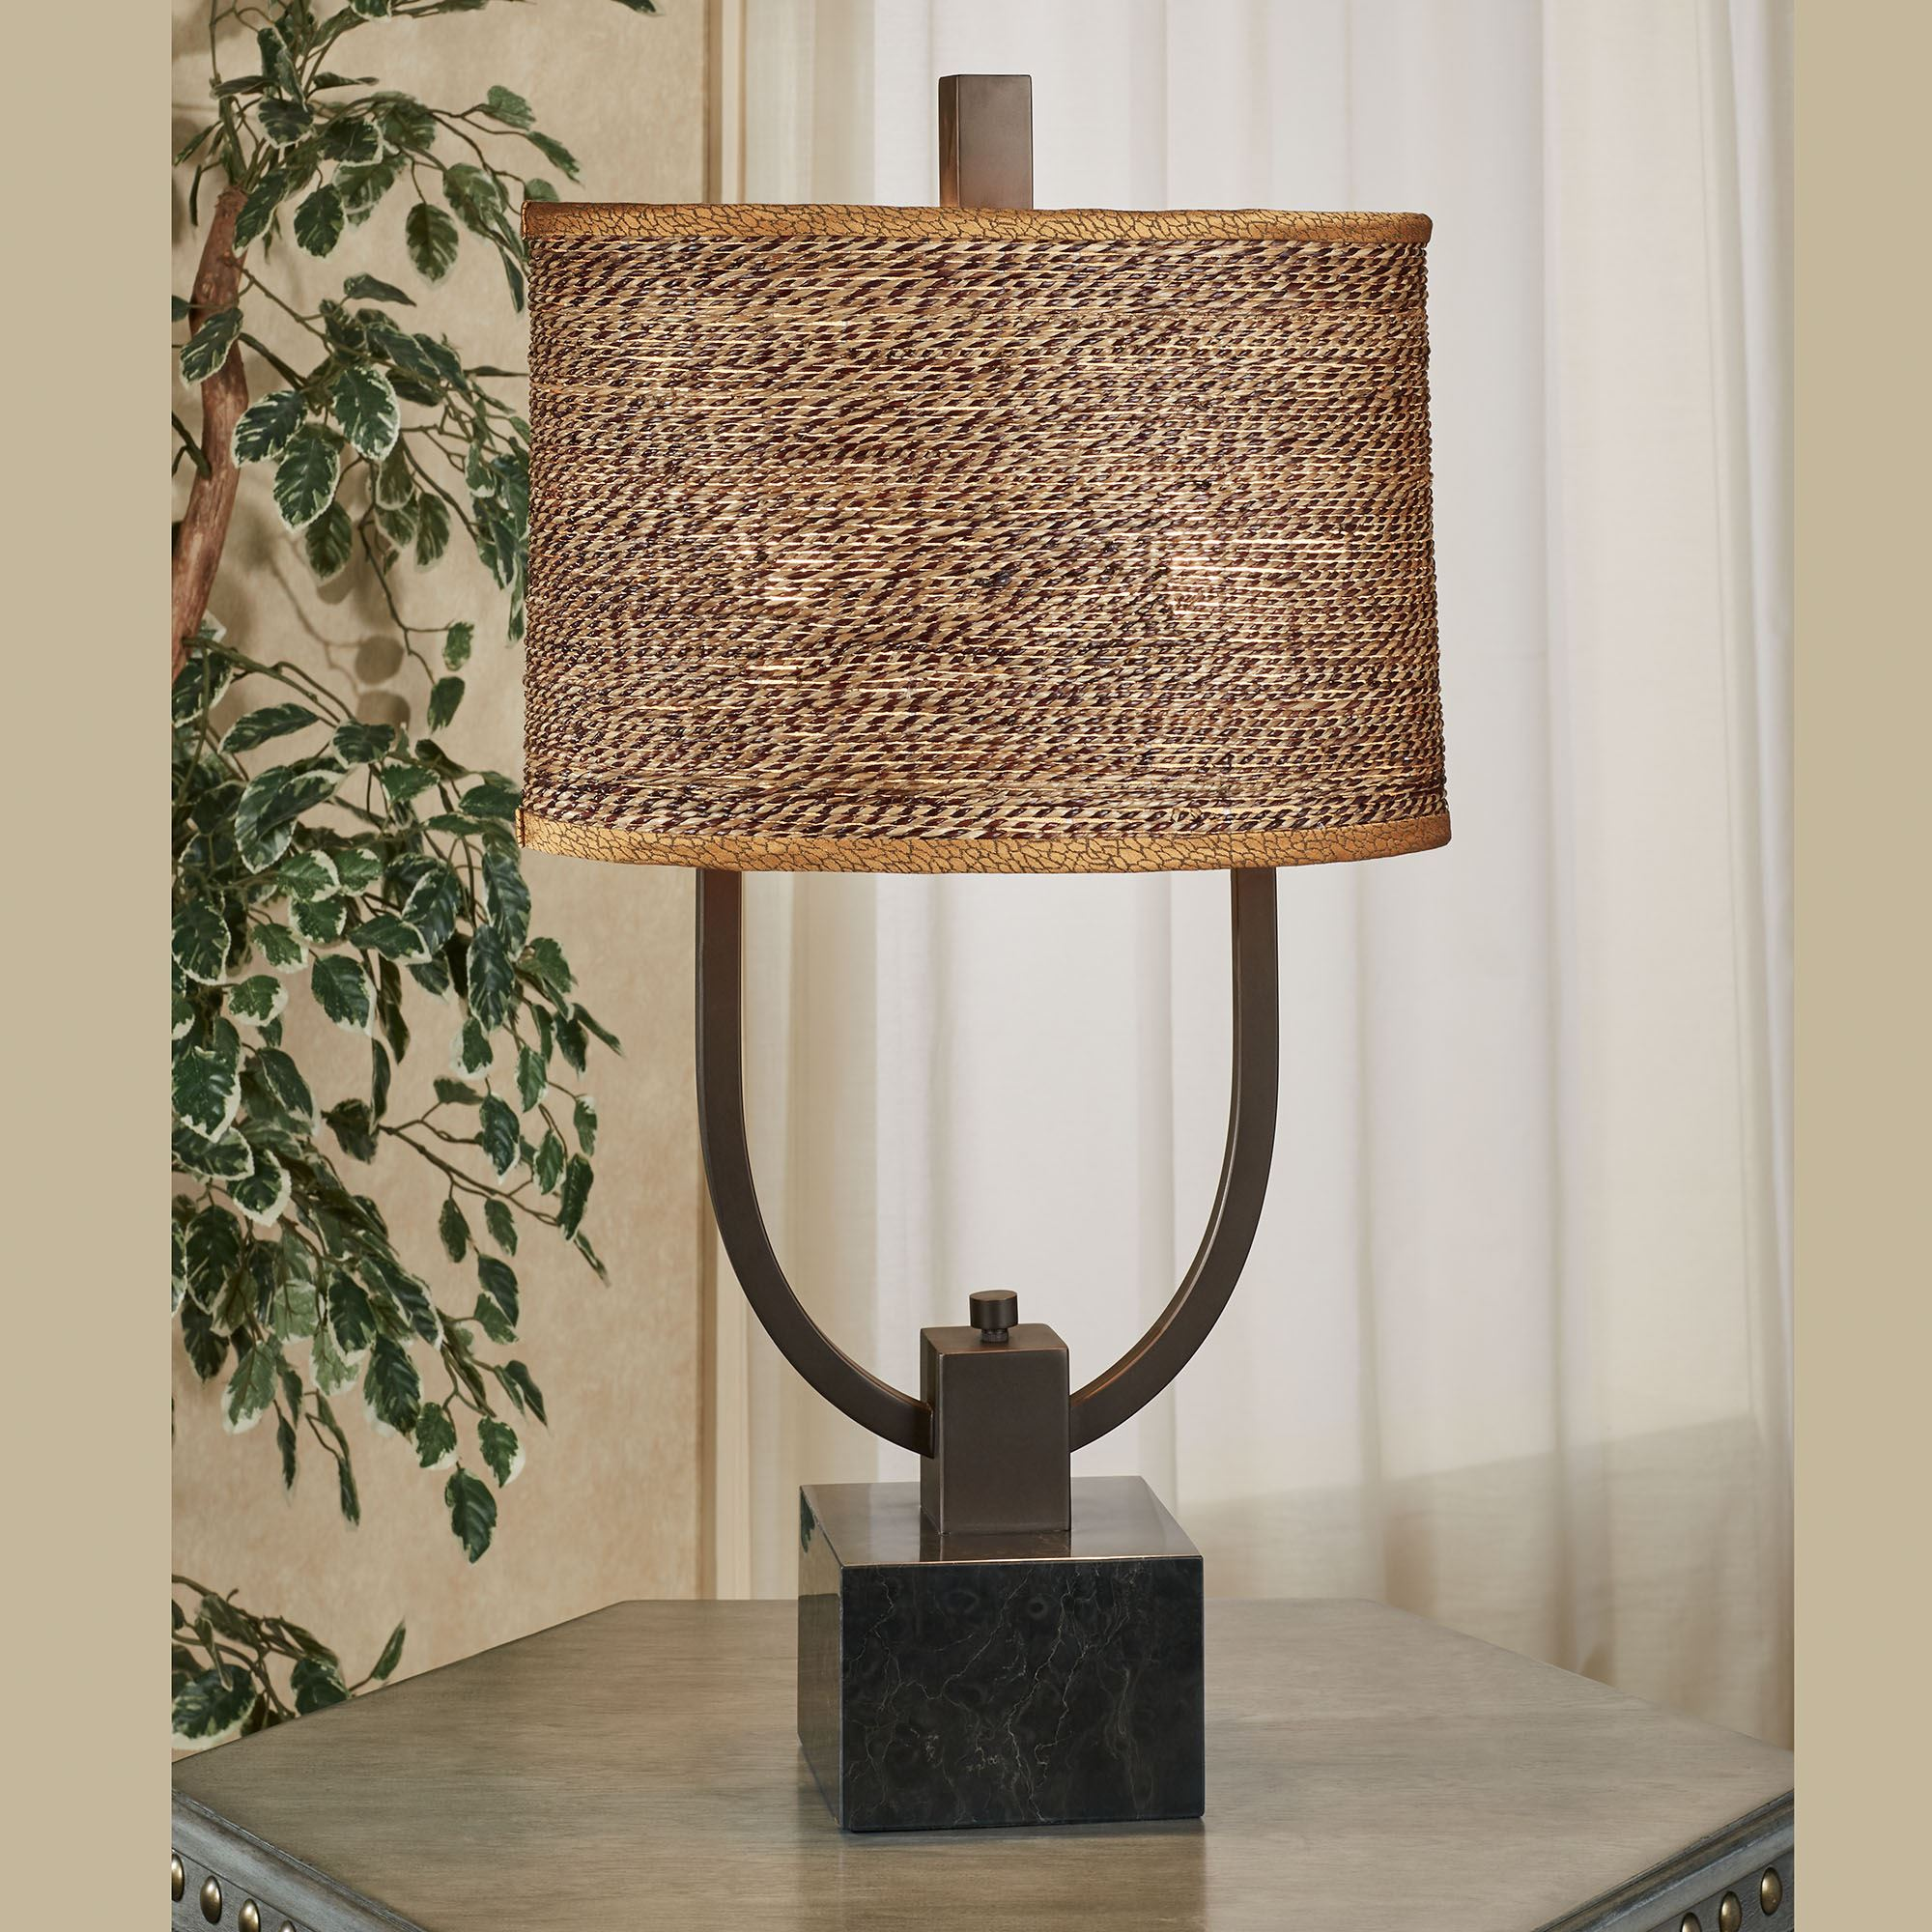 Carolyn Kinder Stabina Table Lamp with Woven Rattan Shade from Uttermost